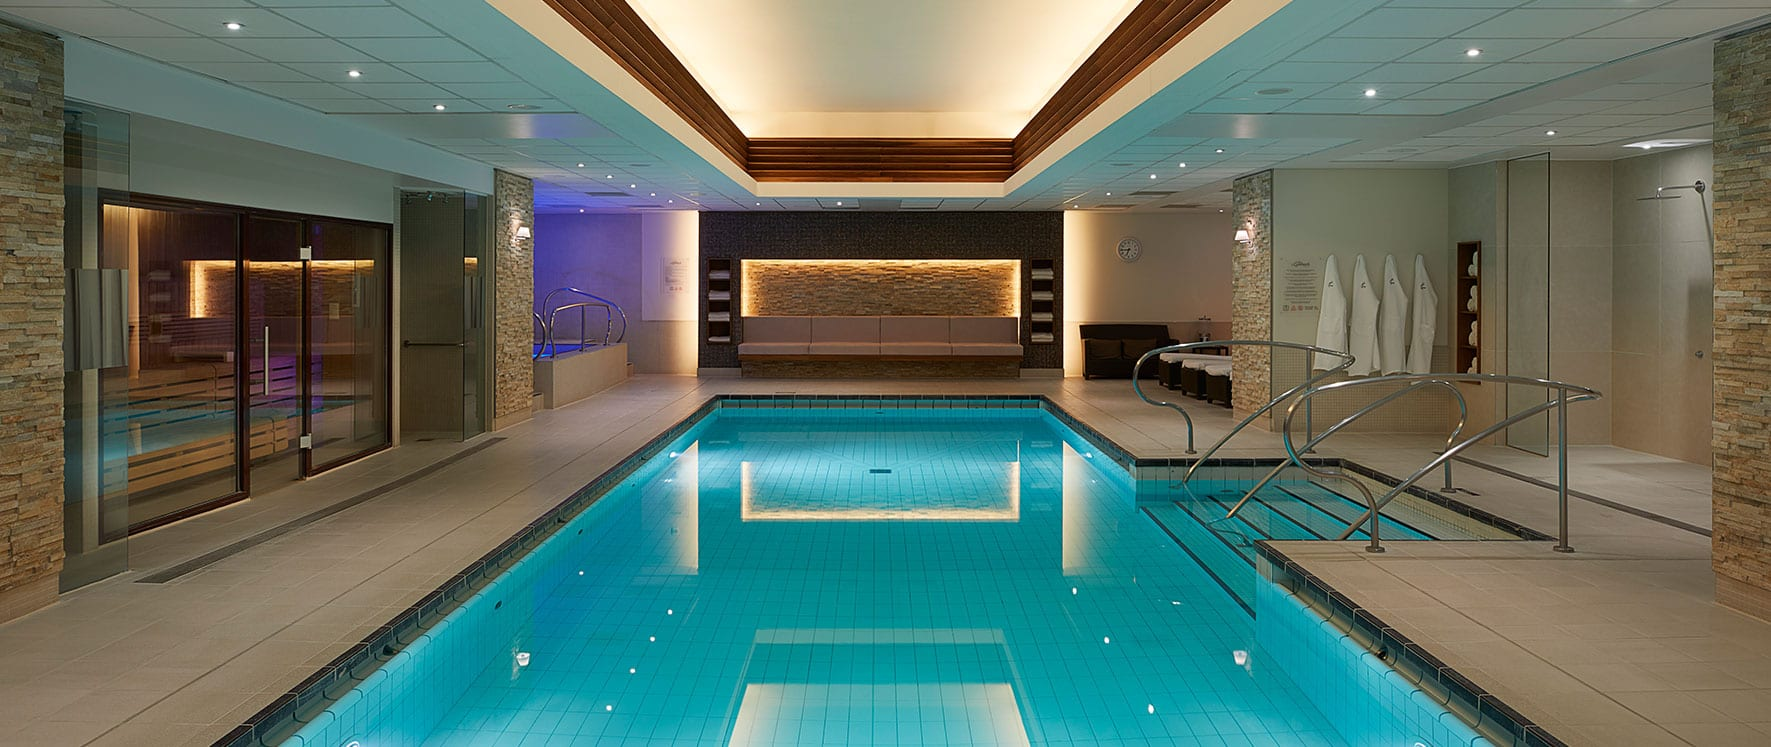 Jacuzzi Pool Was Ist Das Spa Gym Marylebone With Massage And Beauty Treatments The